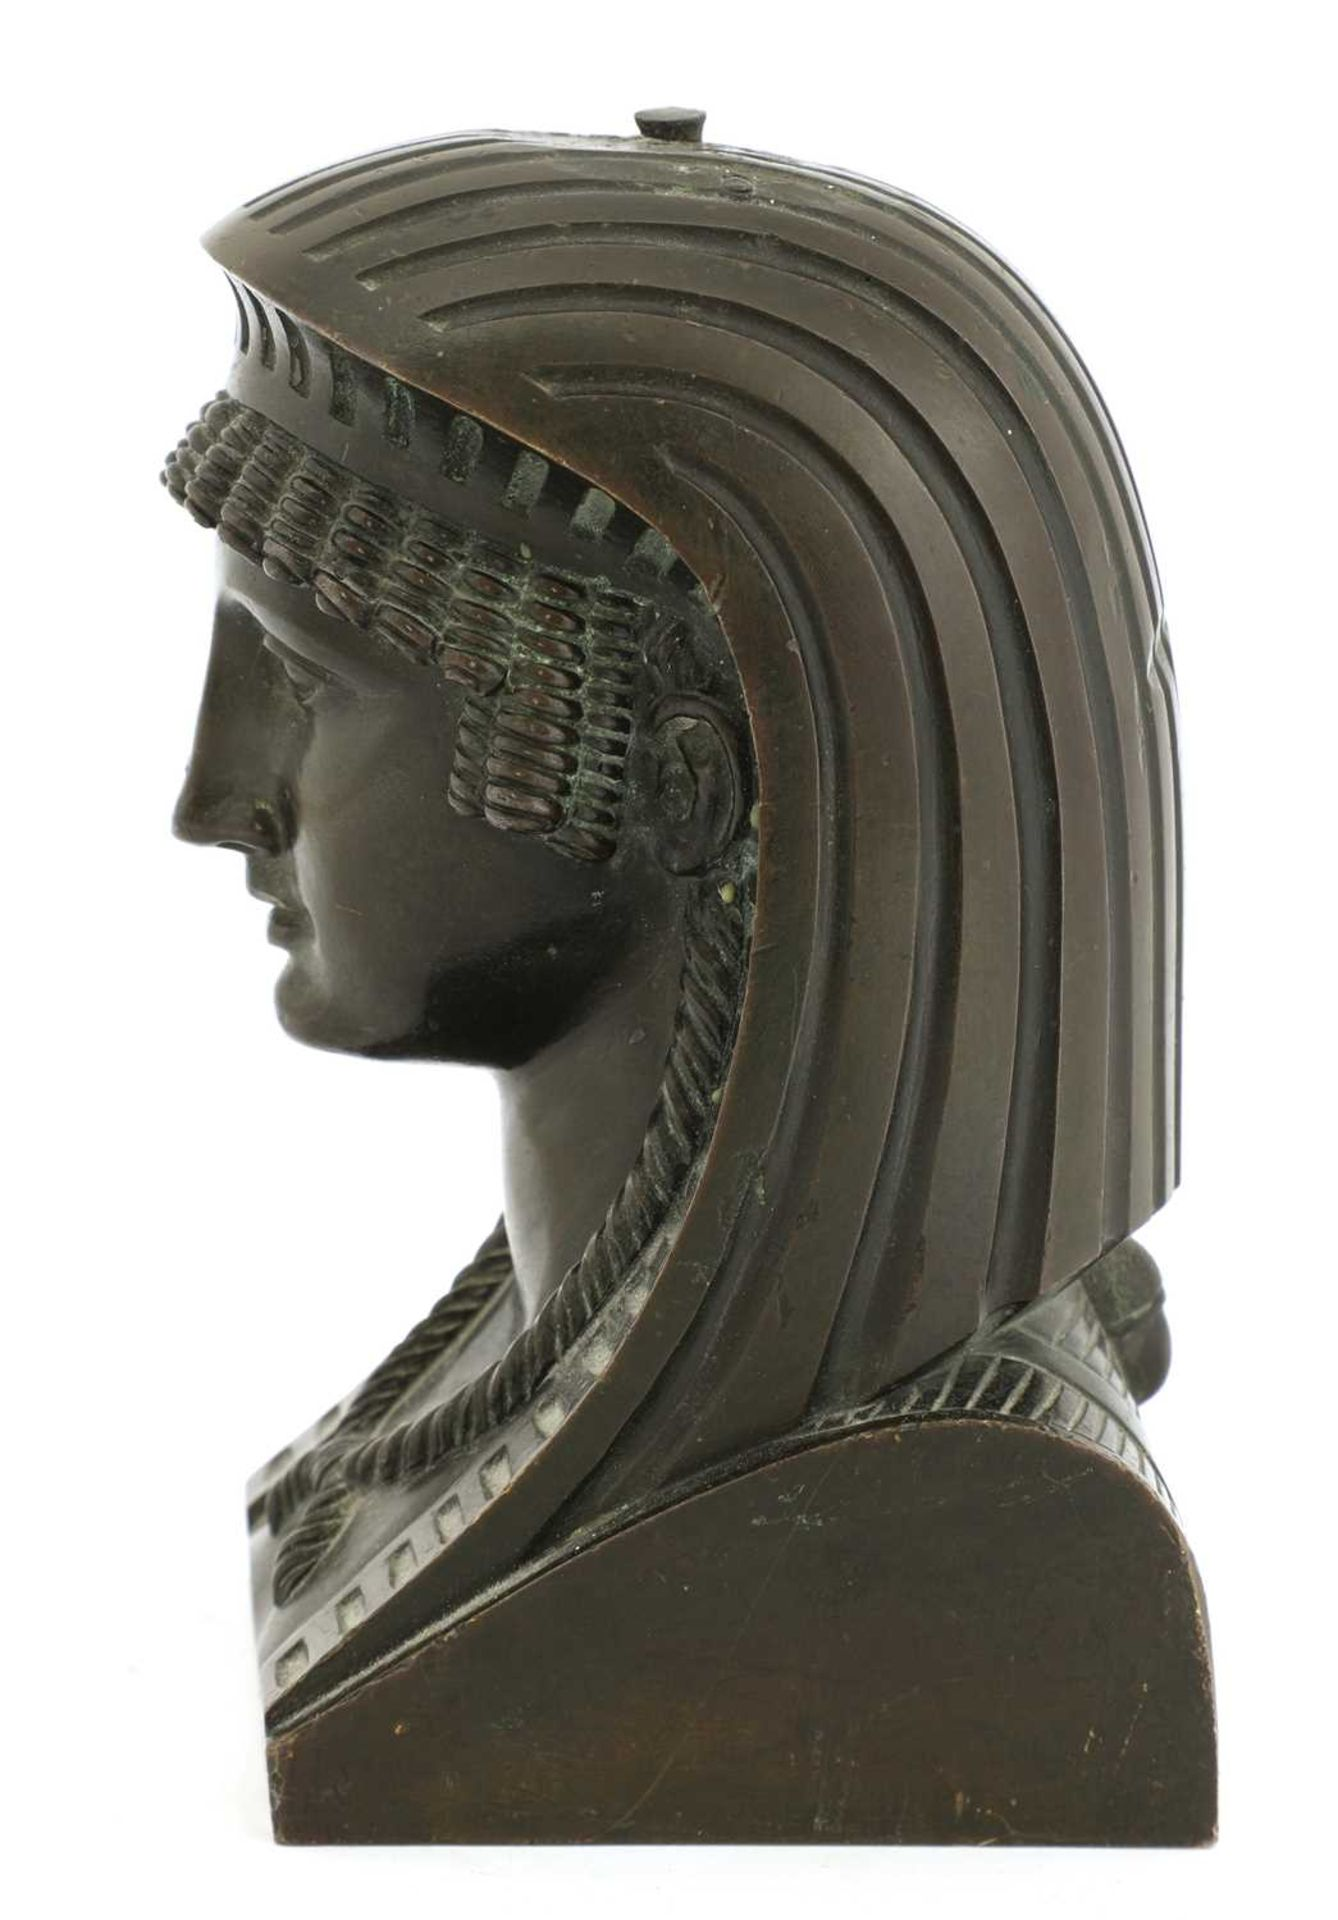 An Egyptian bronze head, - Image 3 of 4